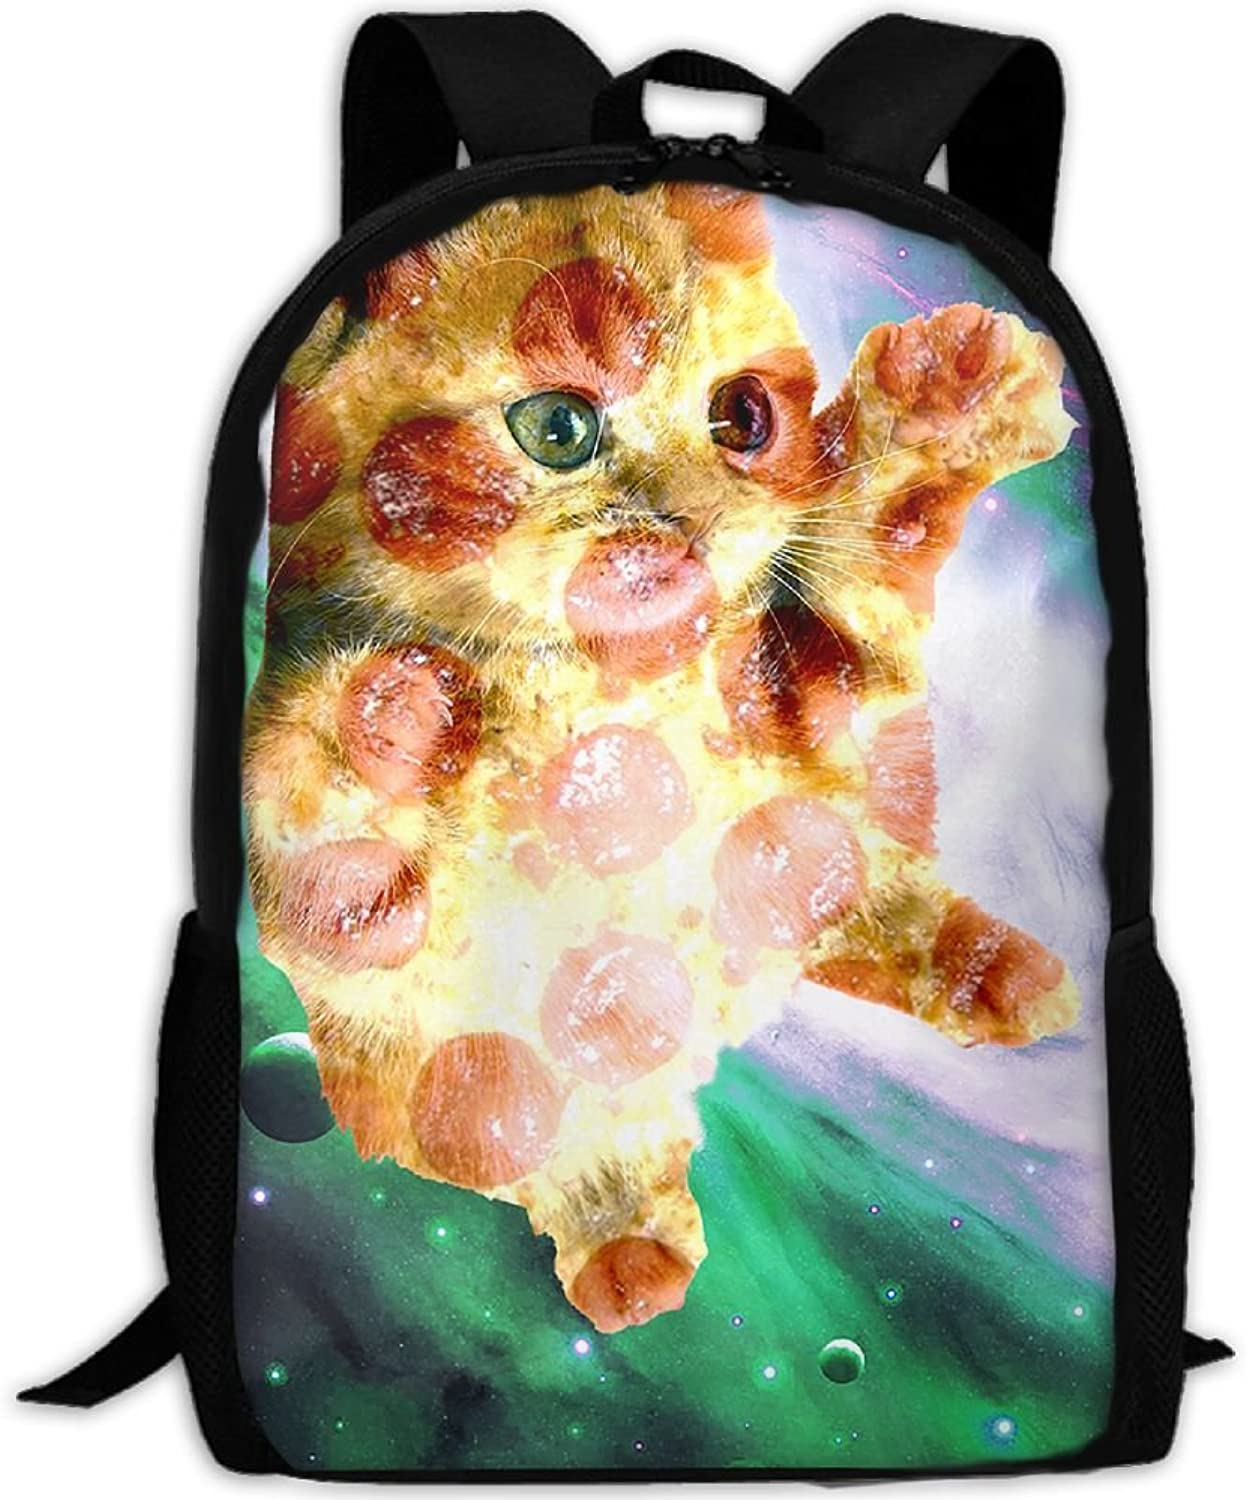 0a97889ee751 Backpack Laptop Hiking School Bags Pizza Cat Space Daypack Shoulder ...